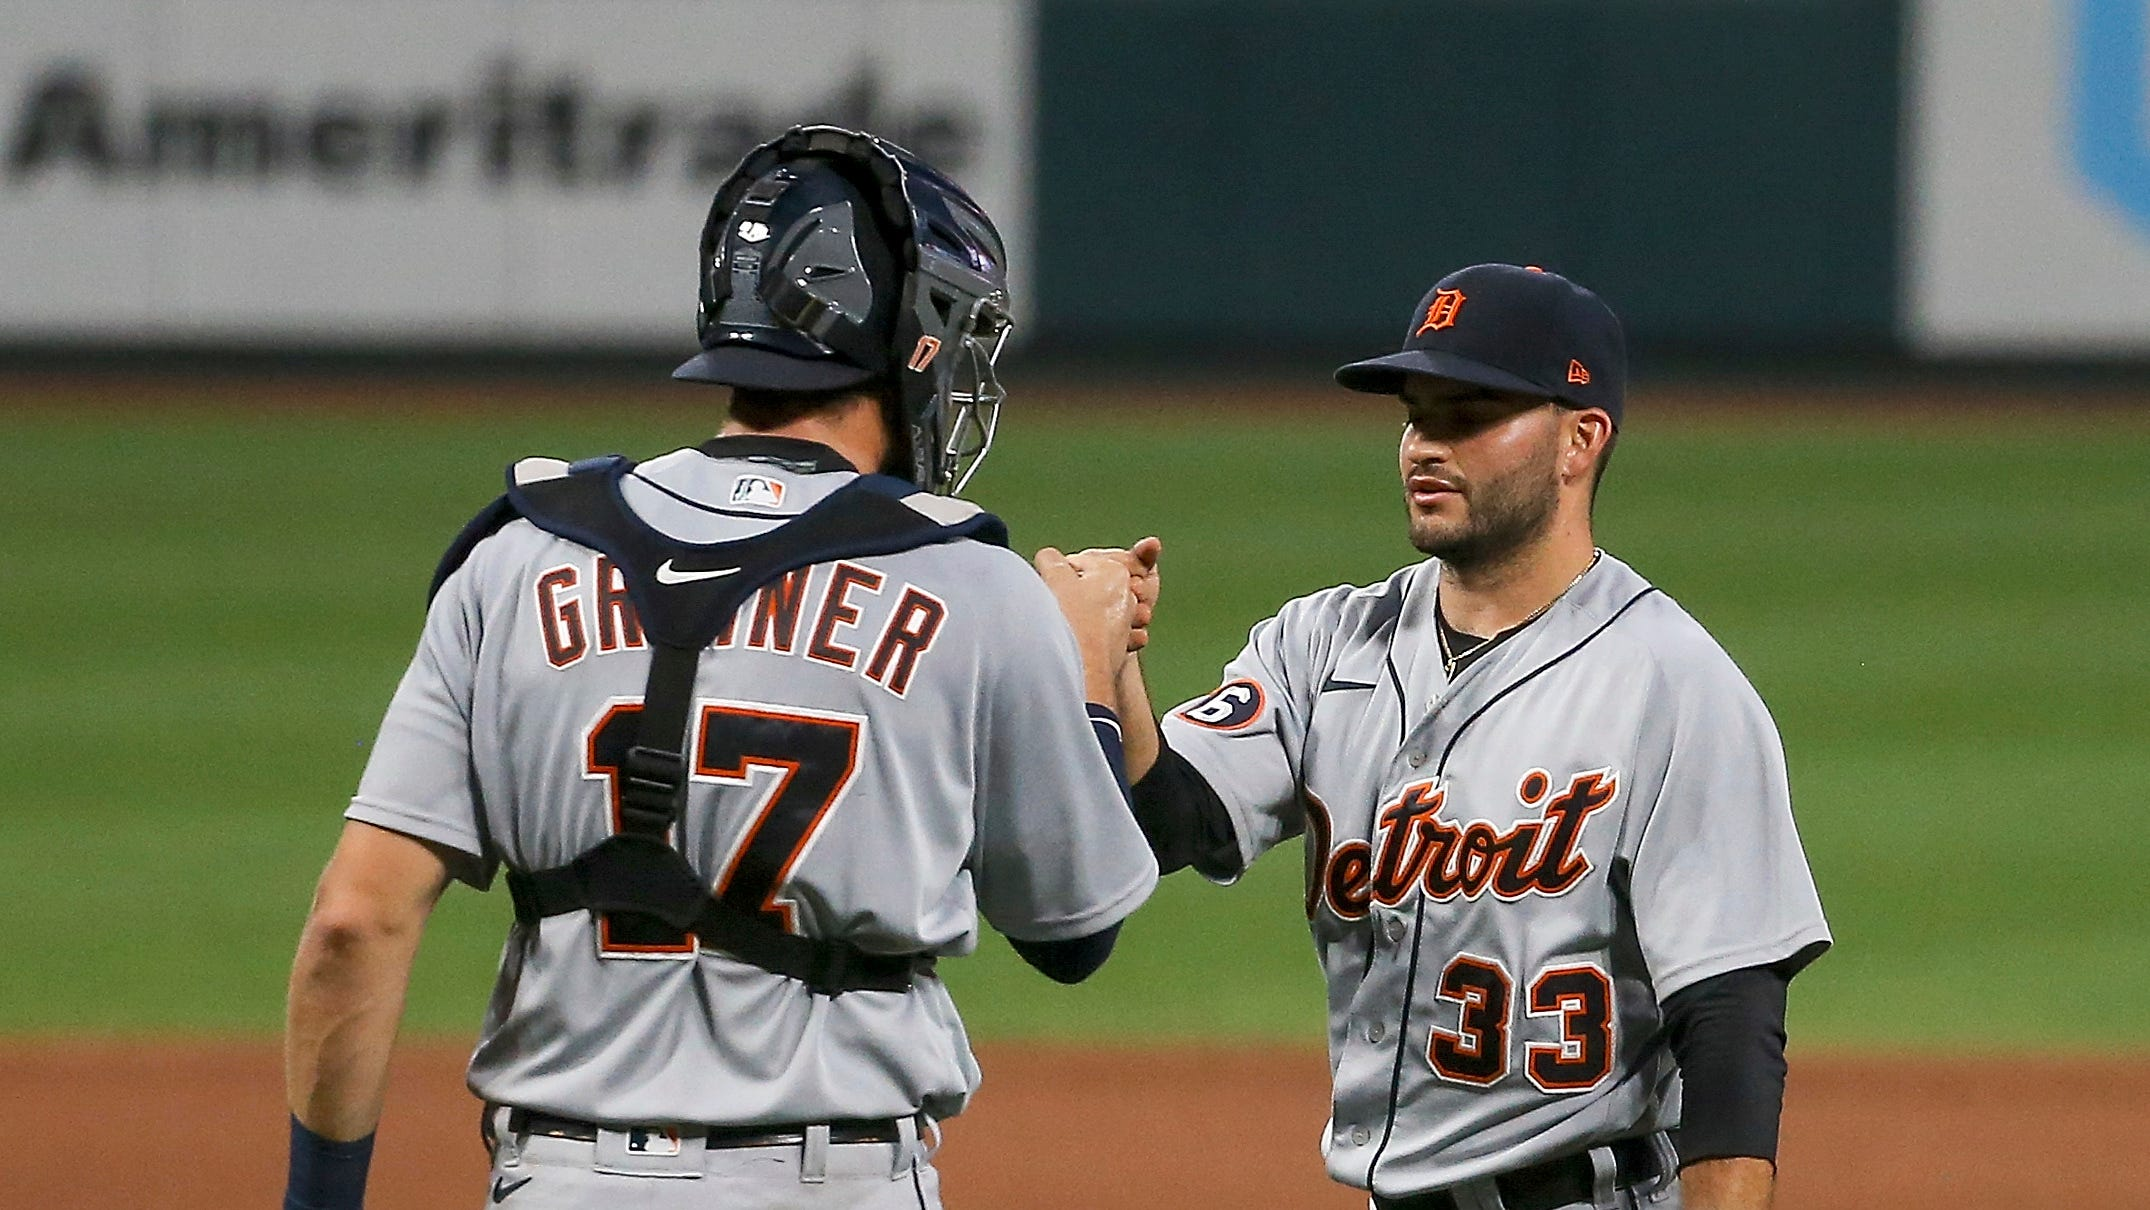 Tigers catcher Grayson Greiner and pitcher Bryan Garcia congratulate each other after the Tigers' 6-3 win in the second game of the doubleheader on Thursday, Sept. 10, 2020, in St. Louis.